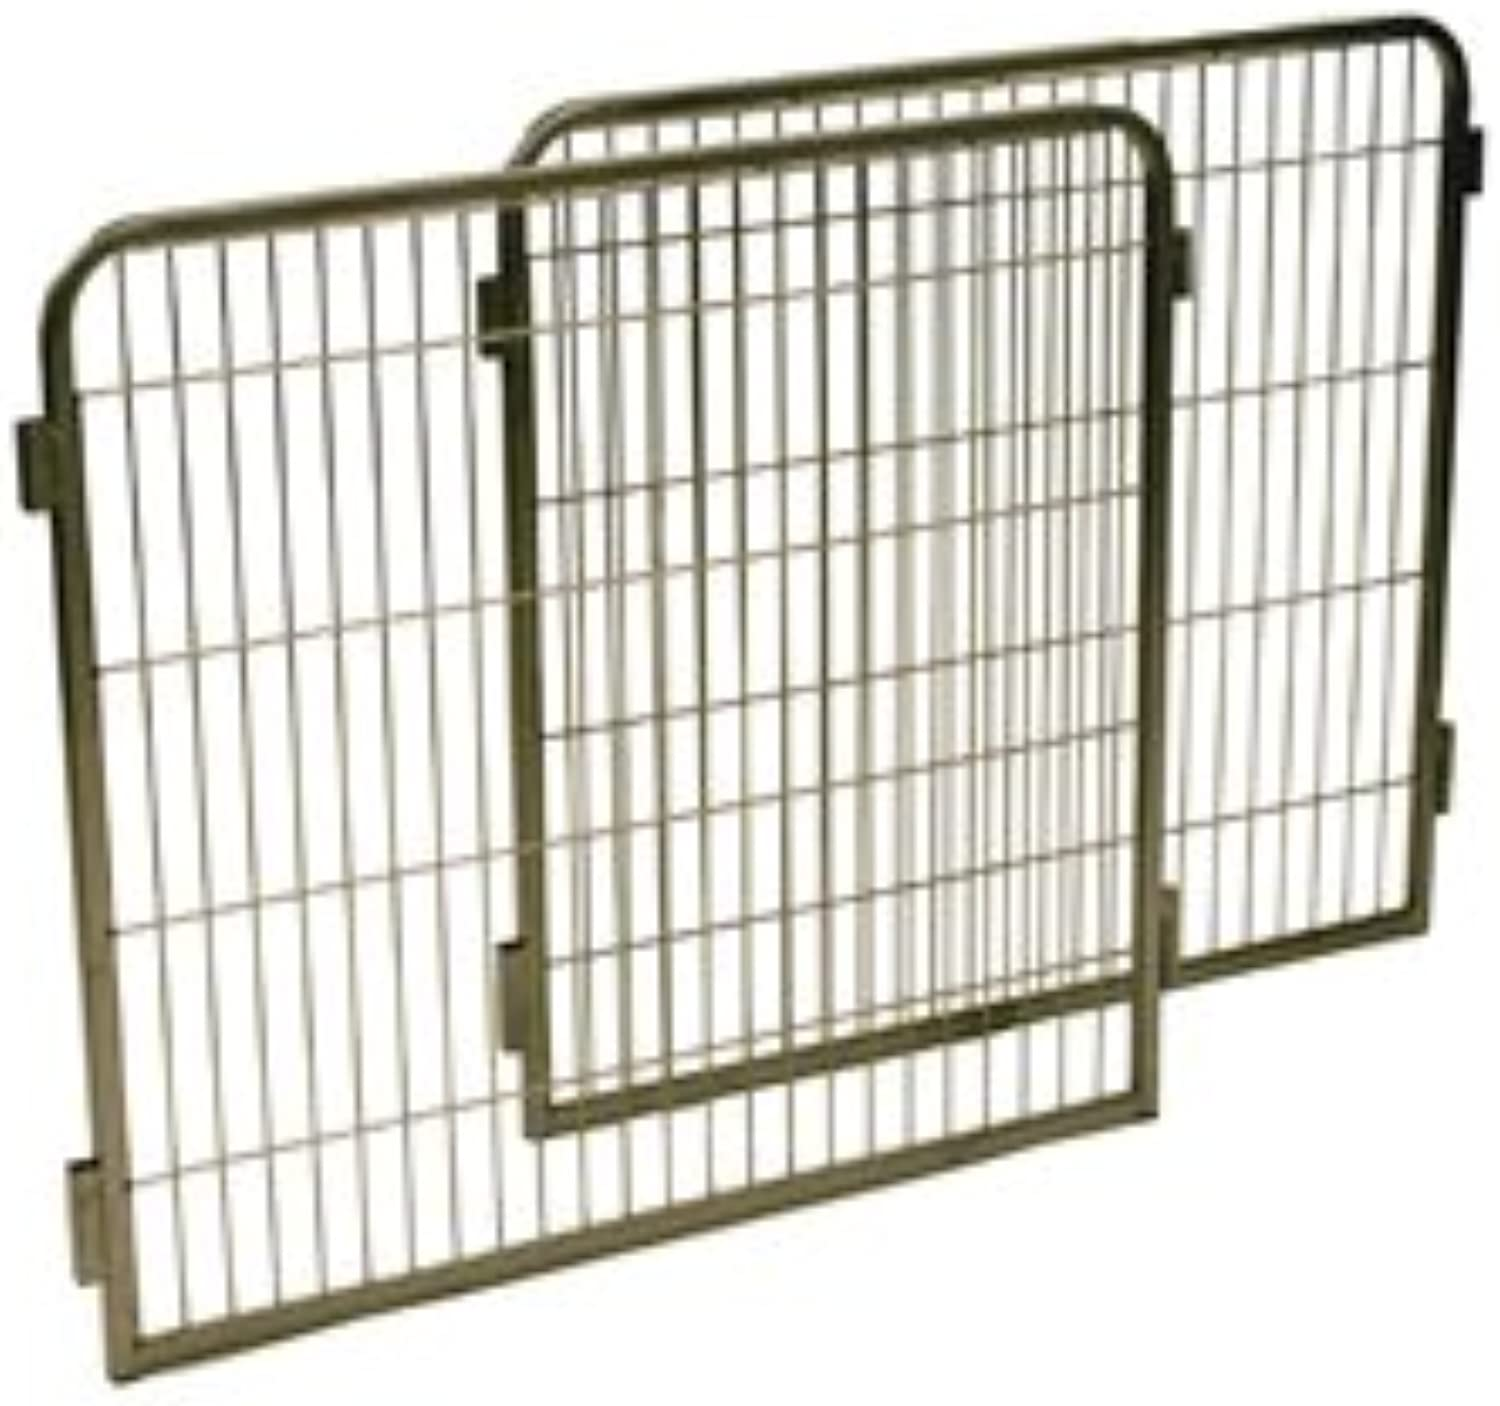 31 ins Pair of extra panels for 35ins high Crufts Freedom play pen